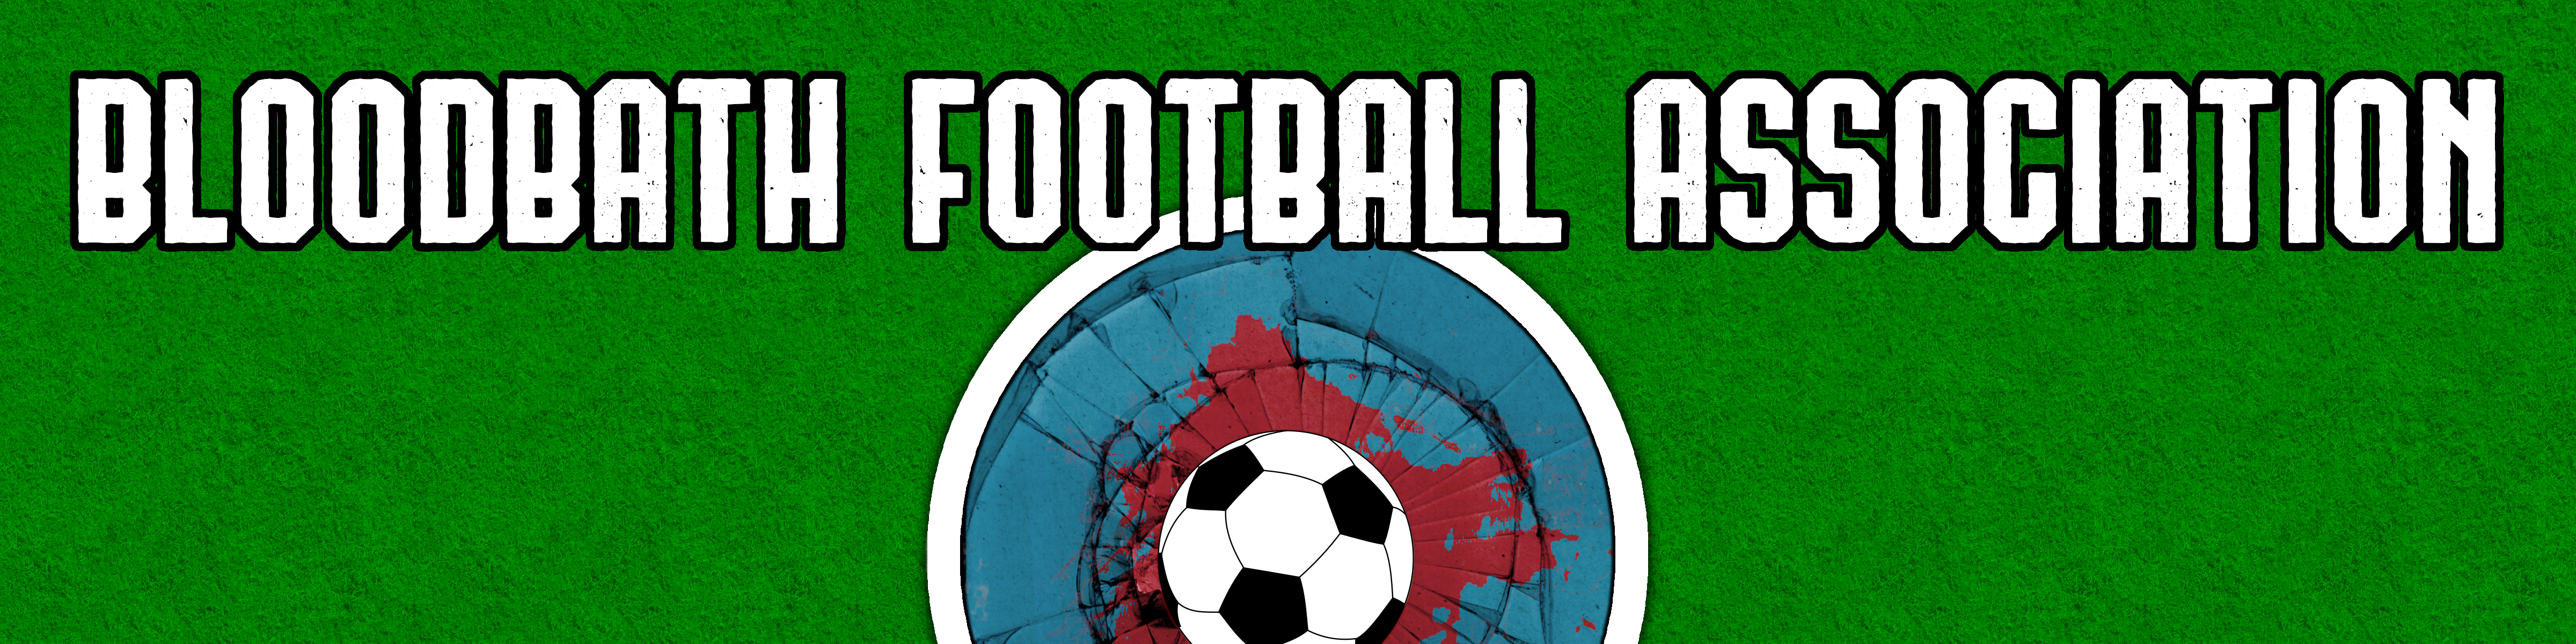 A grassy area with a soccer ball in a blood splatter on a broken logo with the title Bloodbath Football Association